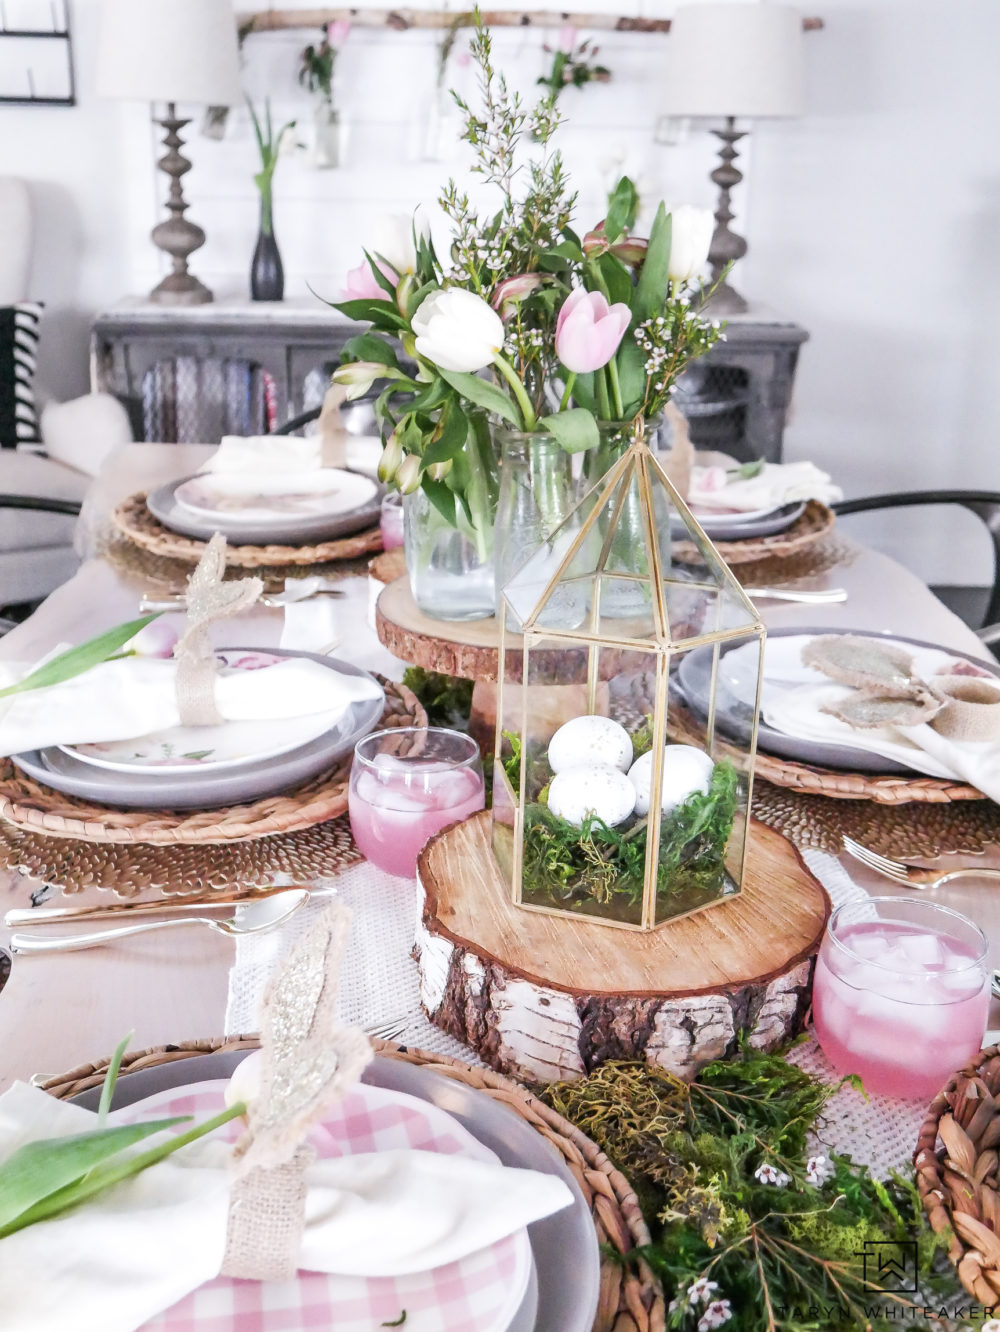 Garden themed Easter table with pink and green accents! Fresh moss centerpiece with wood rounds gives it a rustic touch.